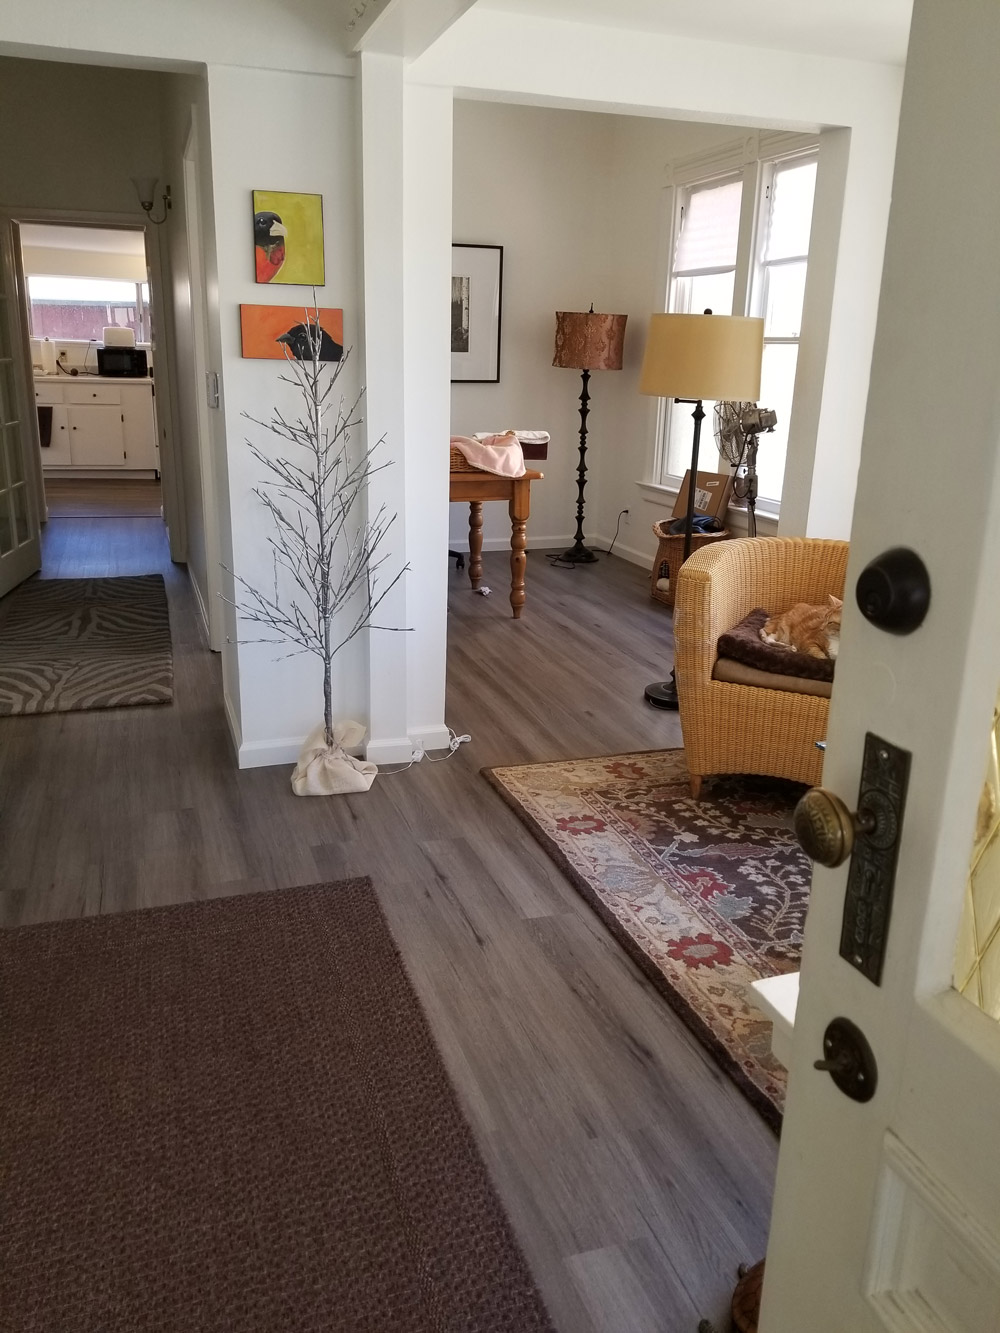 Palo Alto, office/home: hallway, dinning room. Install  water-proof  LVT (luxury vinyl tile)  strip  flooring over       existing  hardwood flooring. 450 square feet.